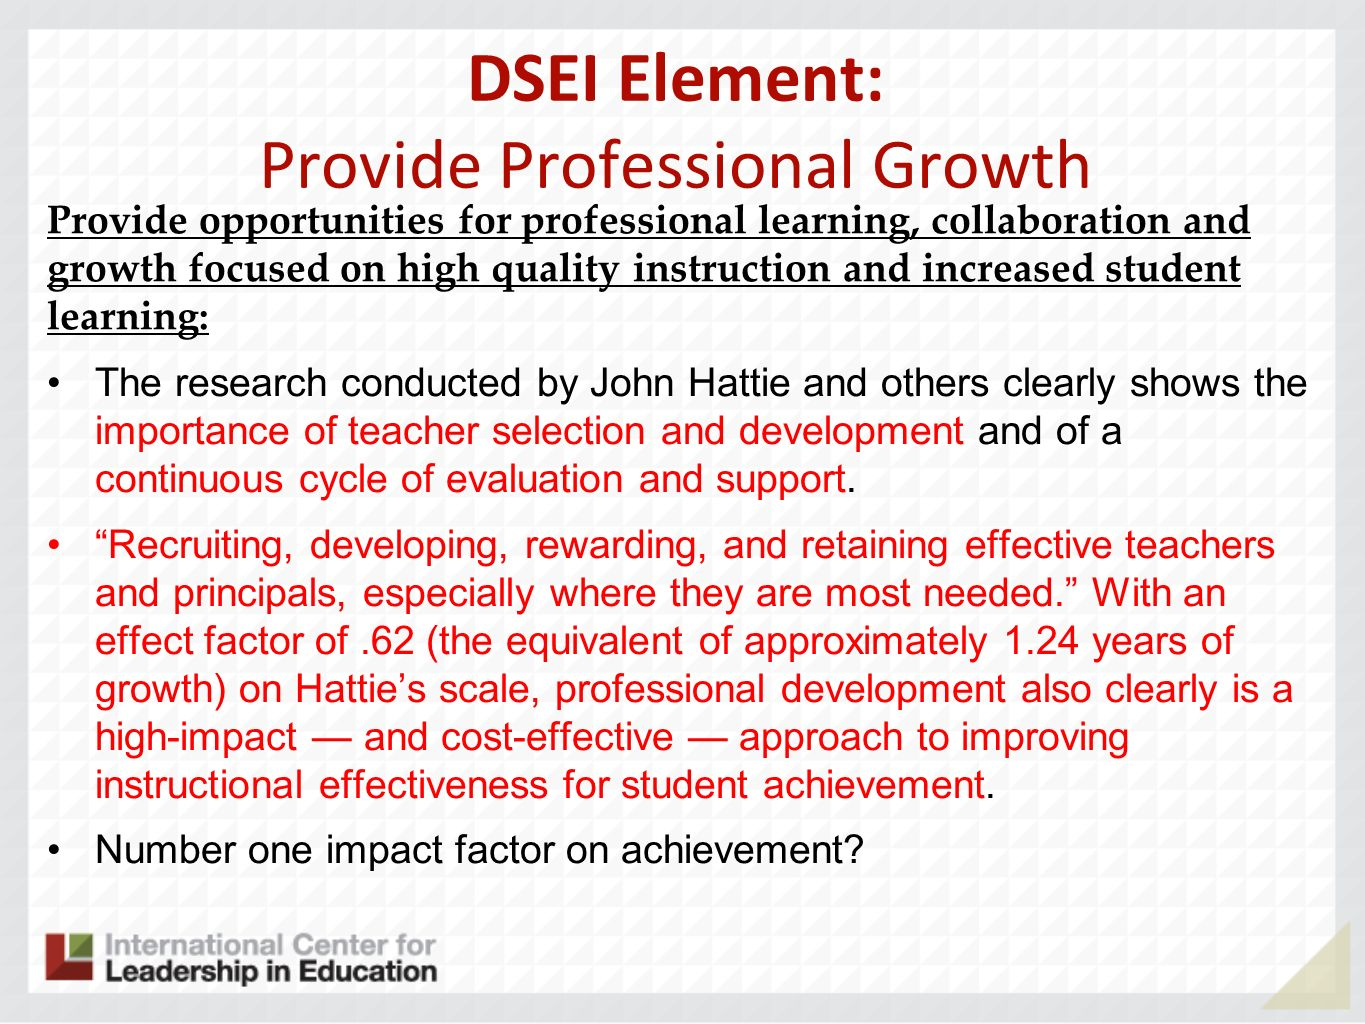 DSEI Element: Provide Professional Growth Provide opportunities for professional learning, collaboration and growth focused on high quality instruction and increased student learning: The research conducted by John Hattie and others clearly shows the importance of teacher selection and development and of a continuous cycle of evaluation and support.